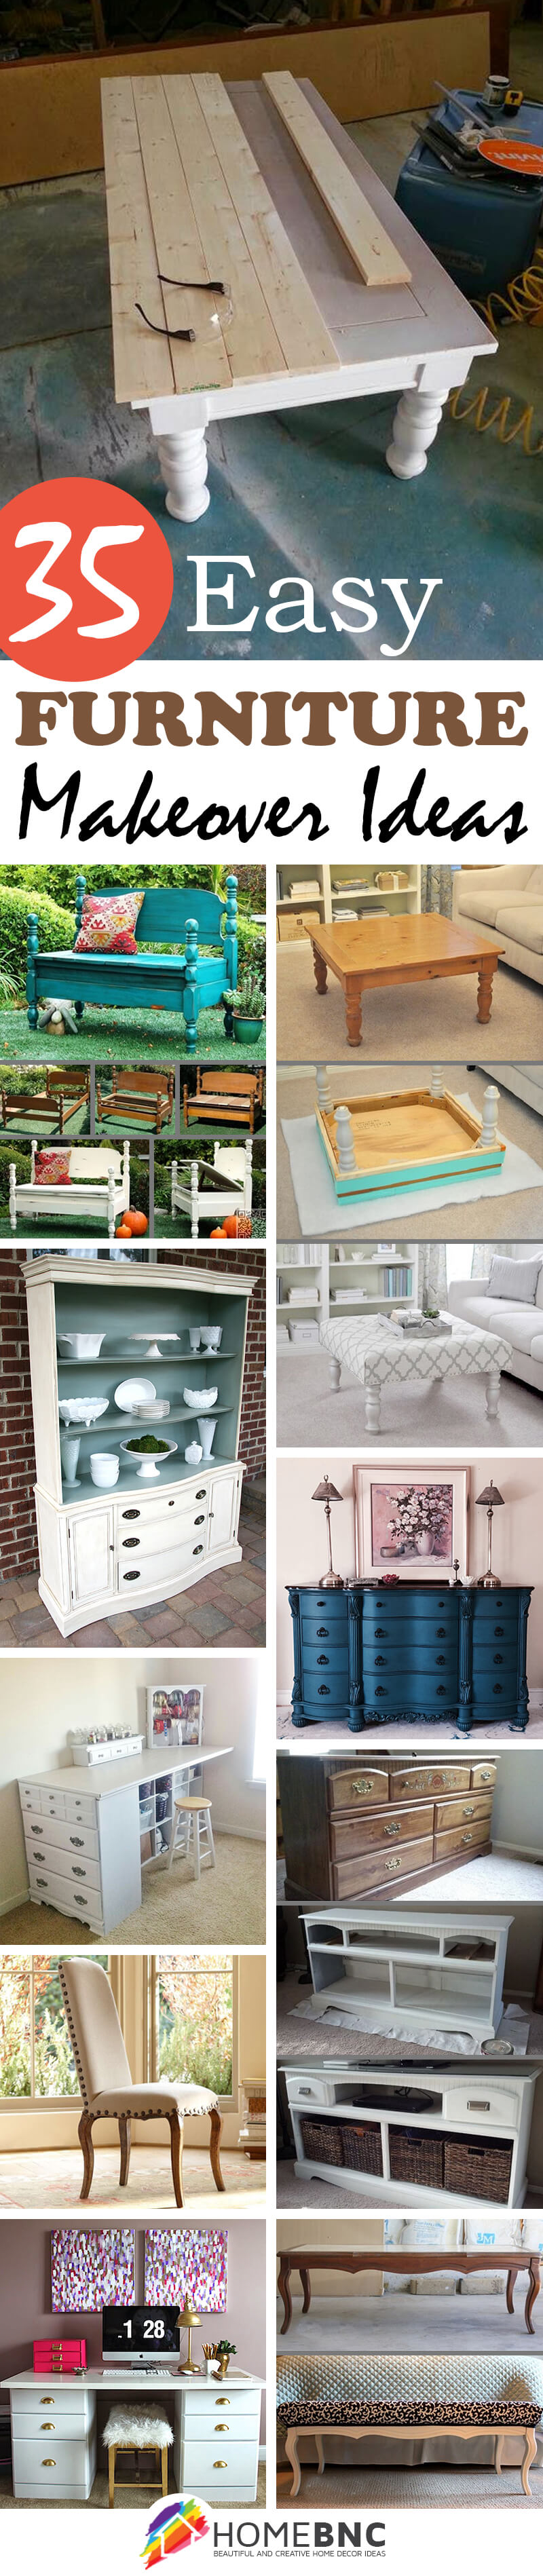 old furniture makeover. 35 Smart Furniture Makeover Ideas To Do This Summer Old